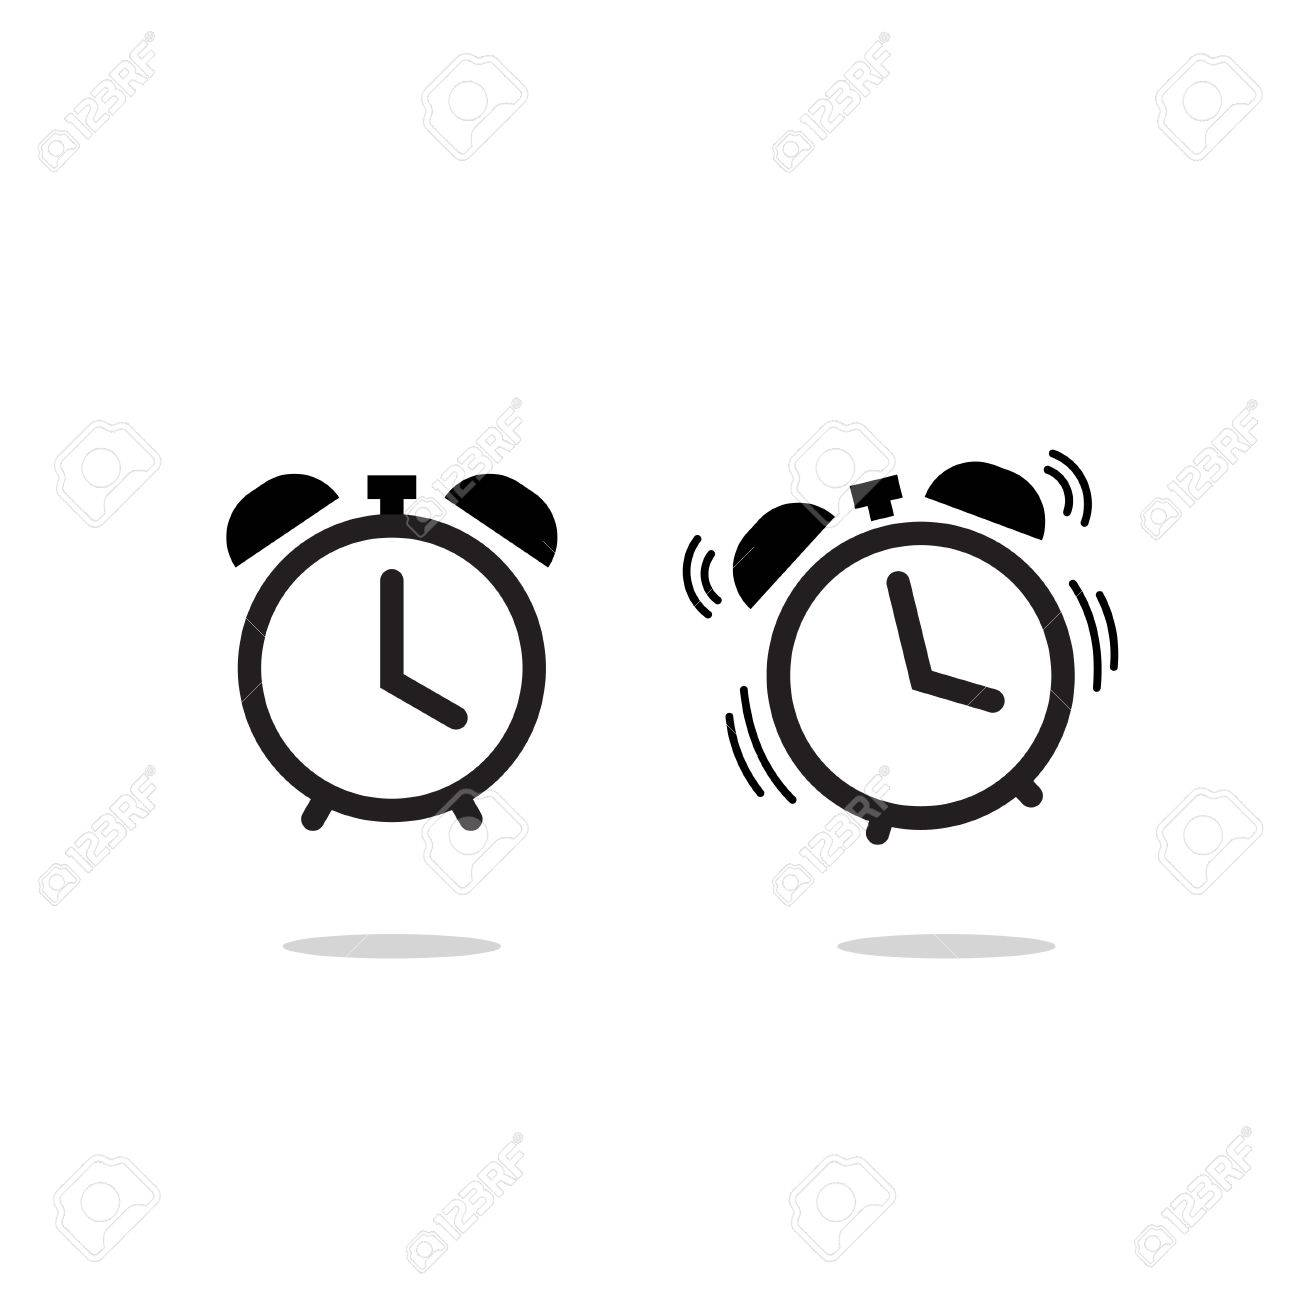 Alarm clock vector icon isolated on white background, simple line outline style, alarm clock ringing icon modern design - 56657703